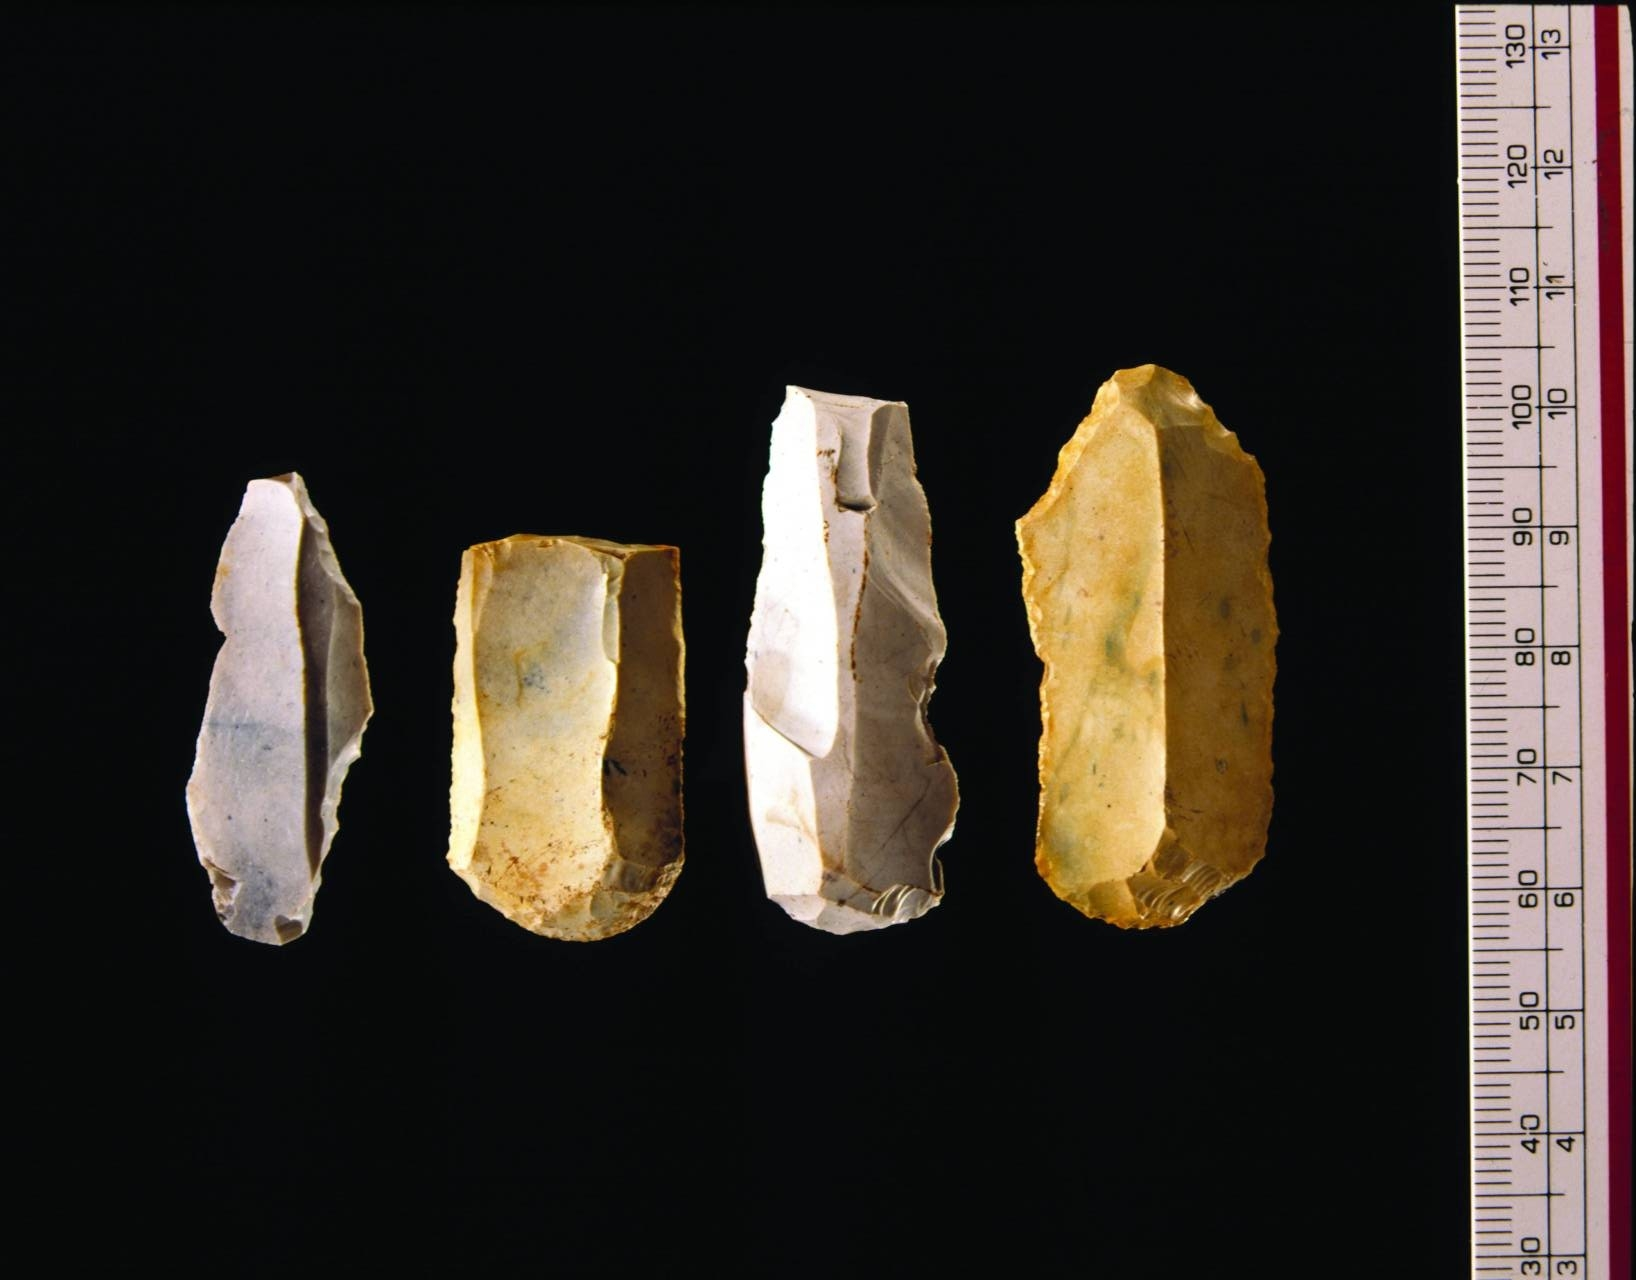 A photo of four worked flints, all roughly oblong, between 20 and 40 mm long.